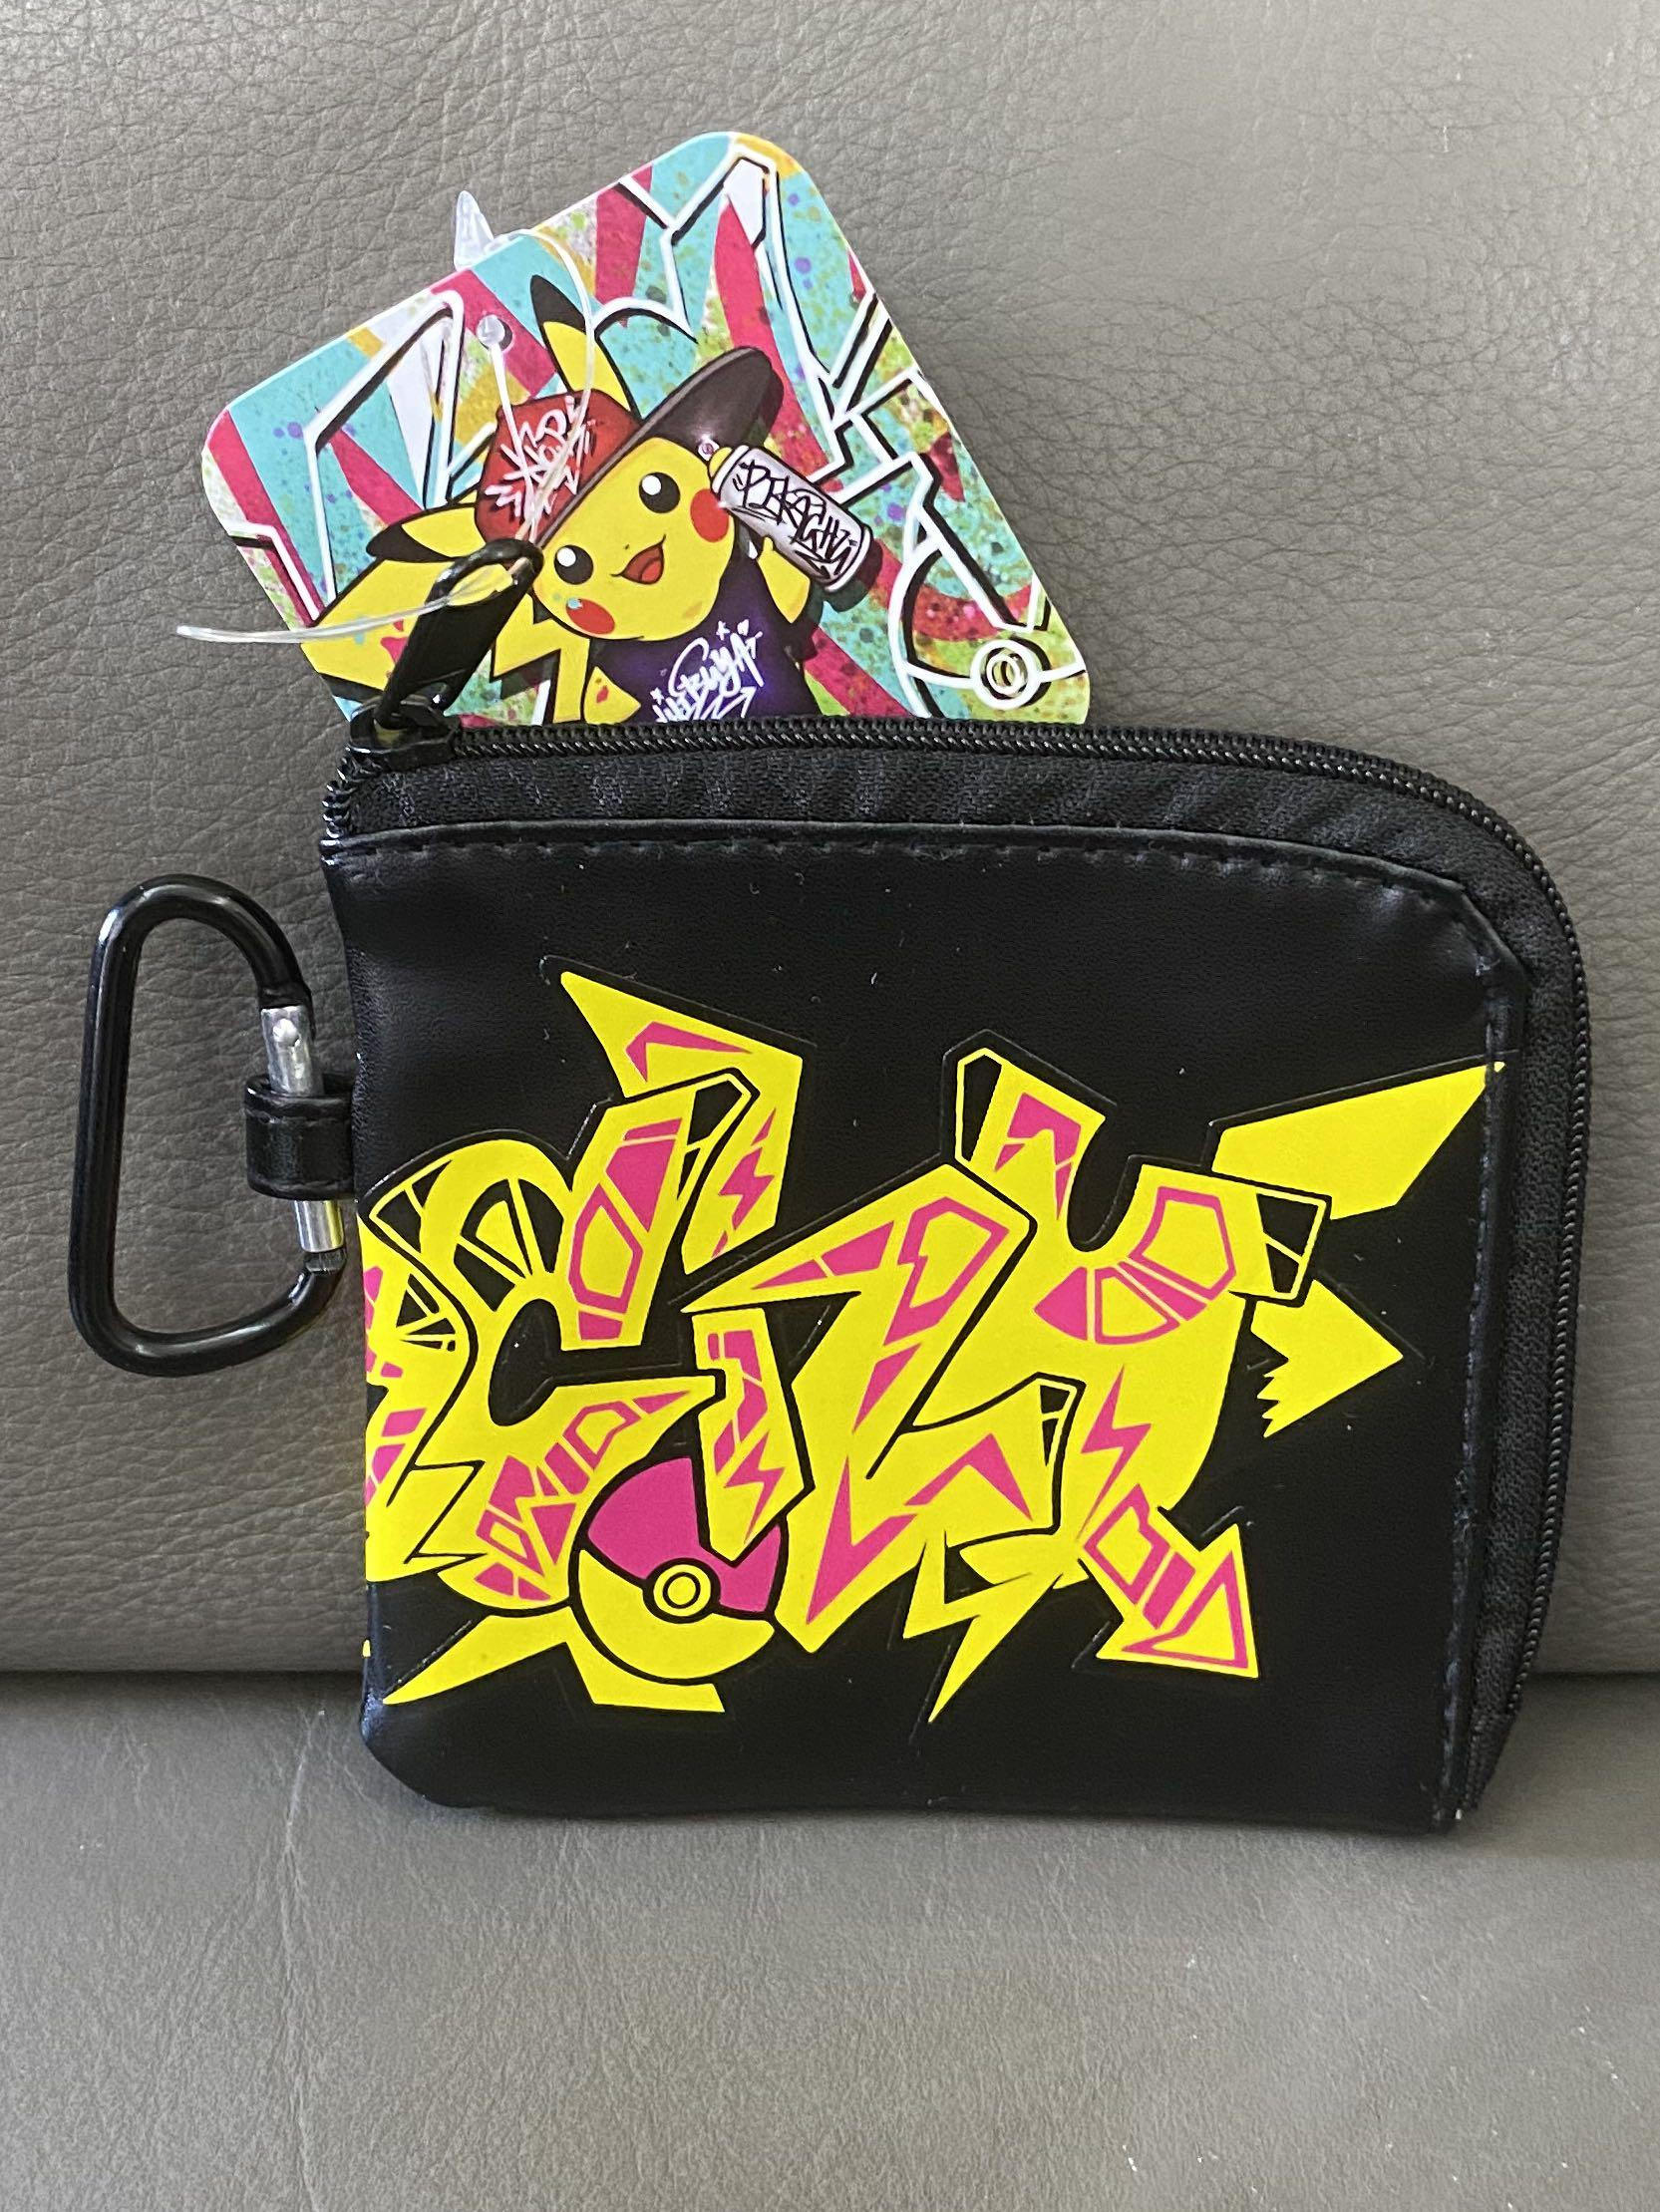 Japan Pokemon Center Shibuya Graffiti Art Limited Wallet 日本 Pokemon Center 渋谷 塗鴉 限定 銀包